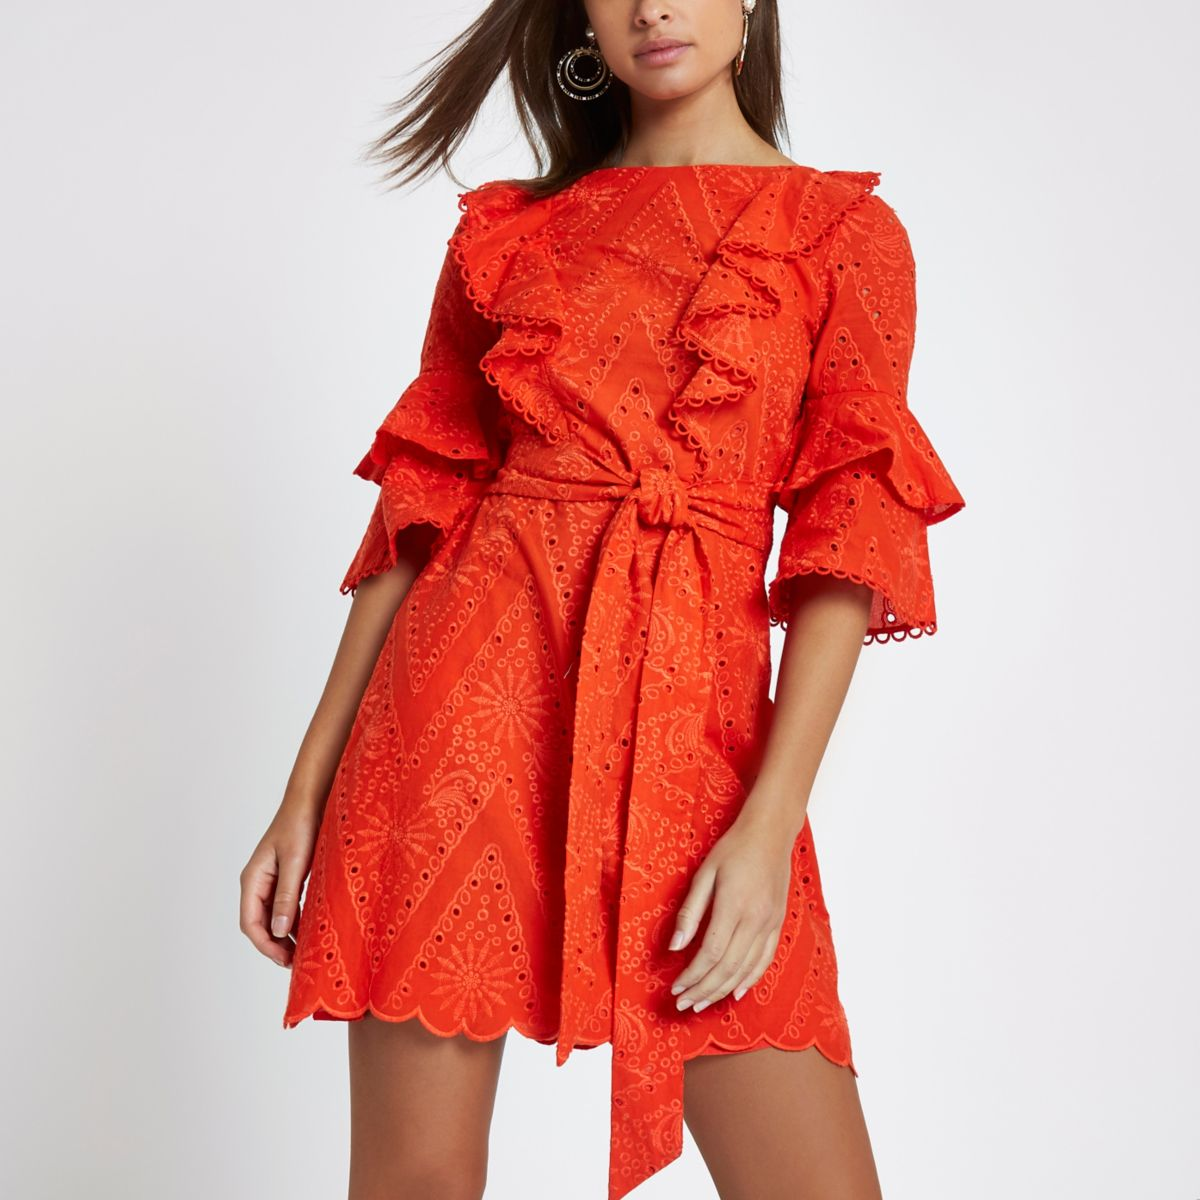 Red lace frill tie waist dress